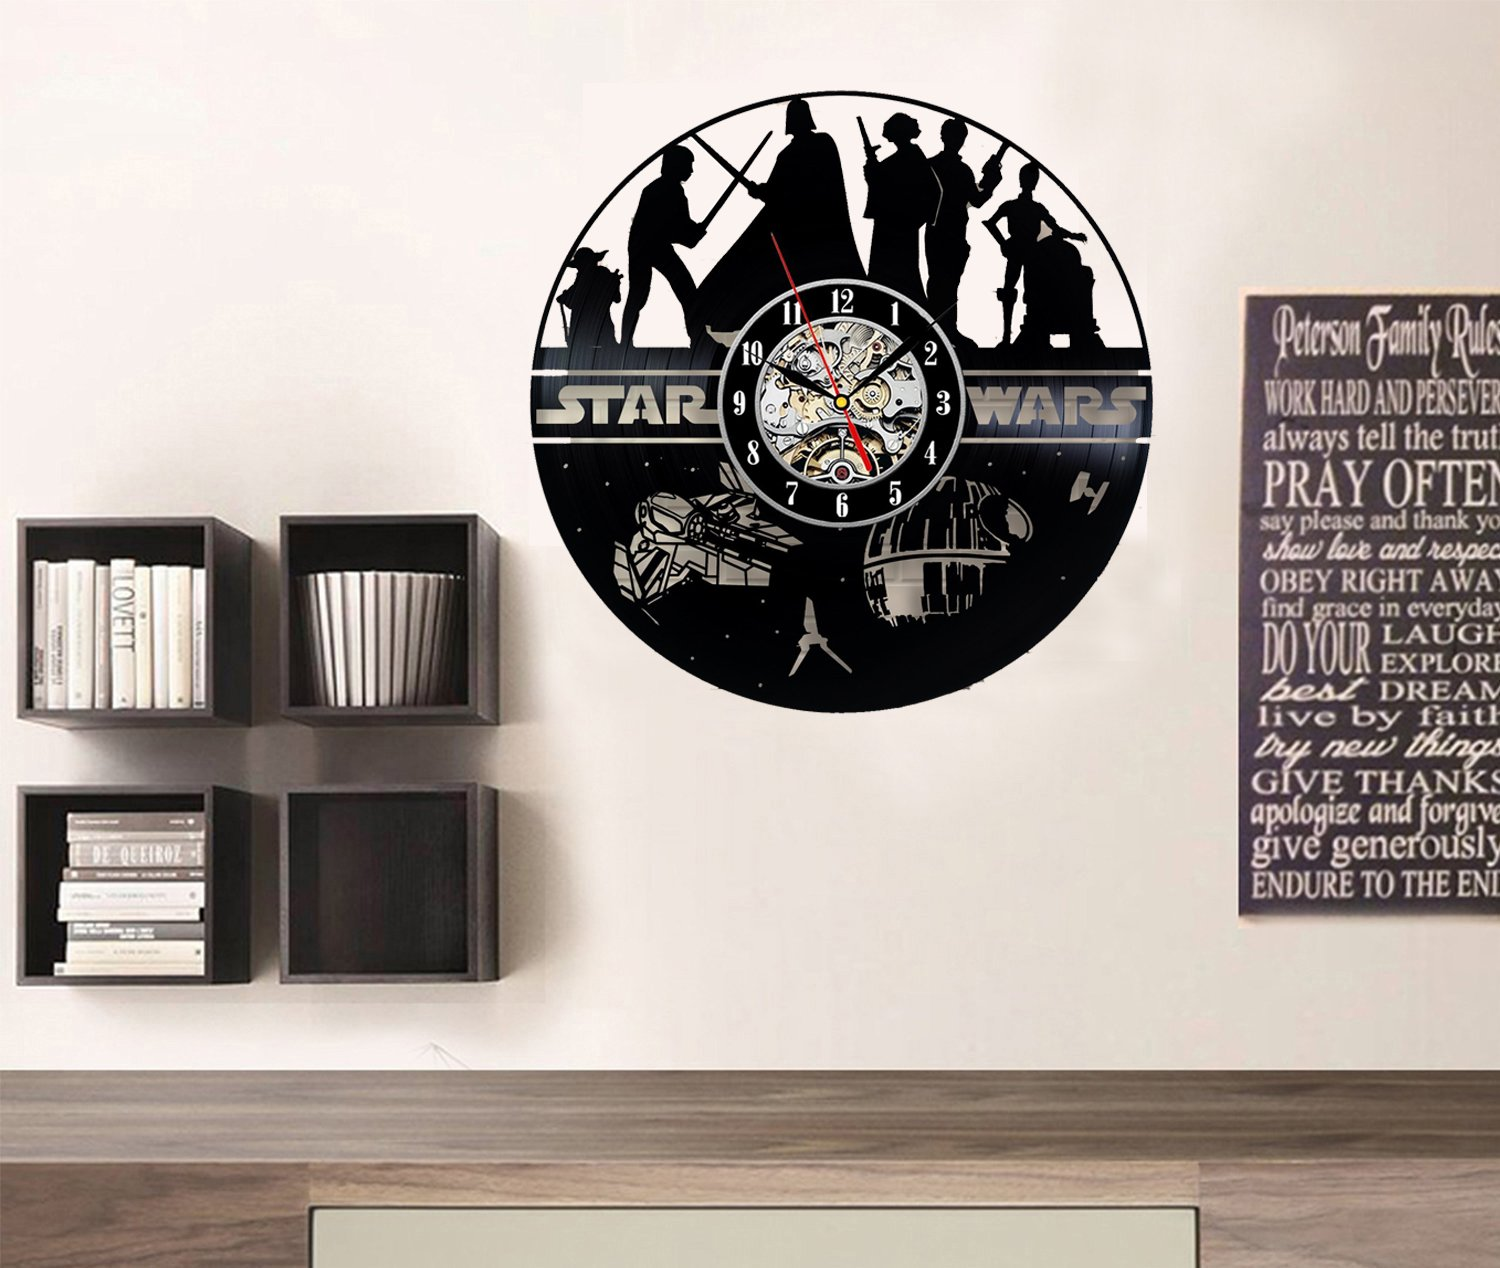 star wars wall clocks, star wars wall clock, star wars decor, star wars clock, star wars clocks